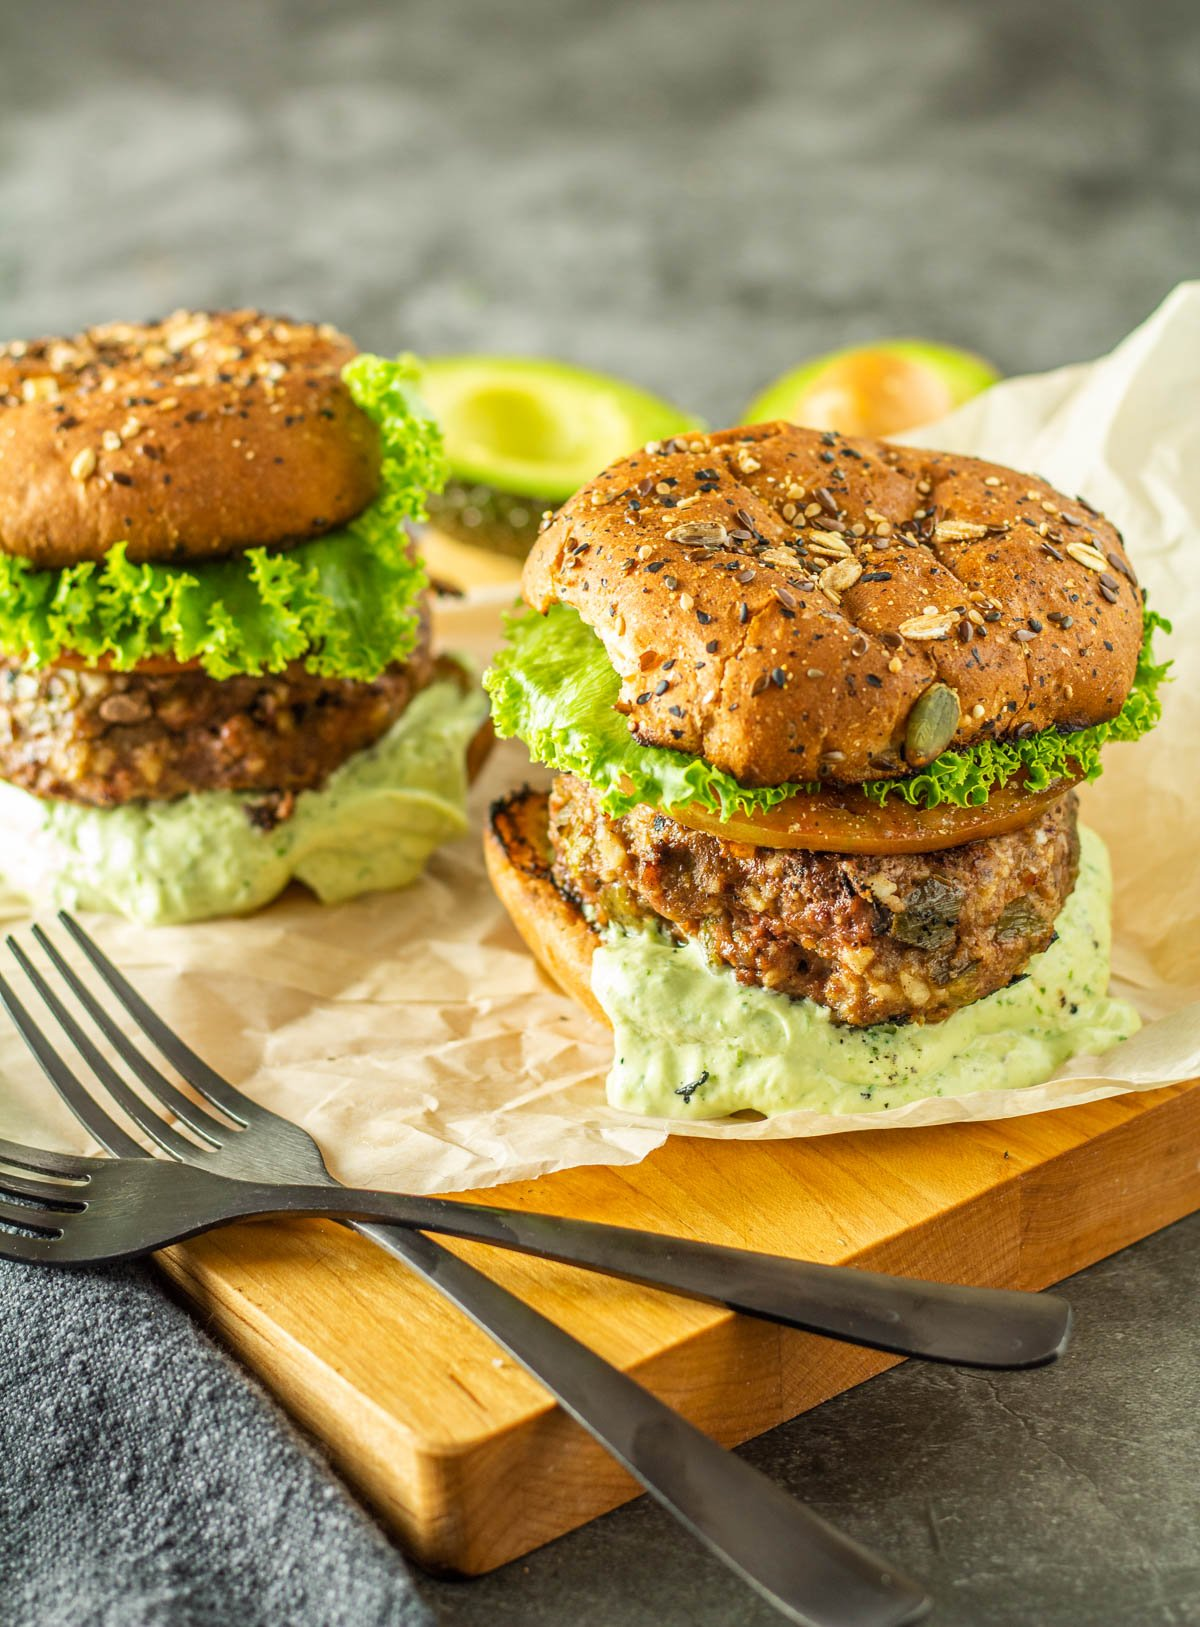 2 healthy bison burgers with whole grain buns on parchment on a wood cutting board.